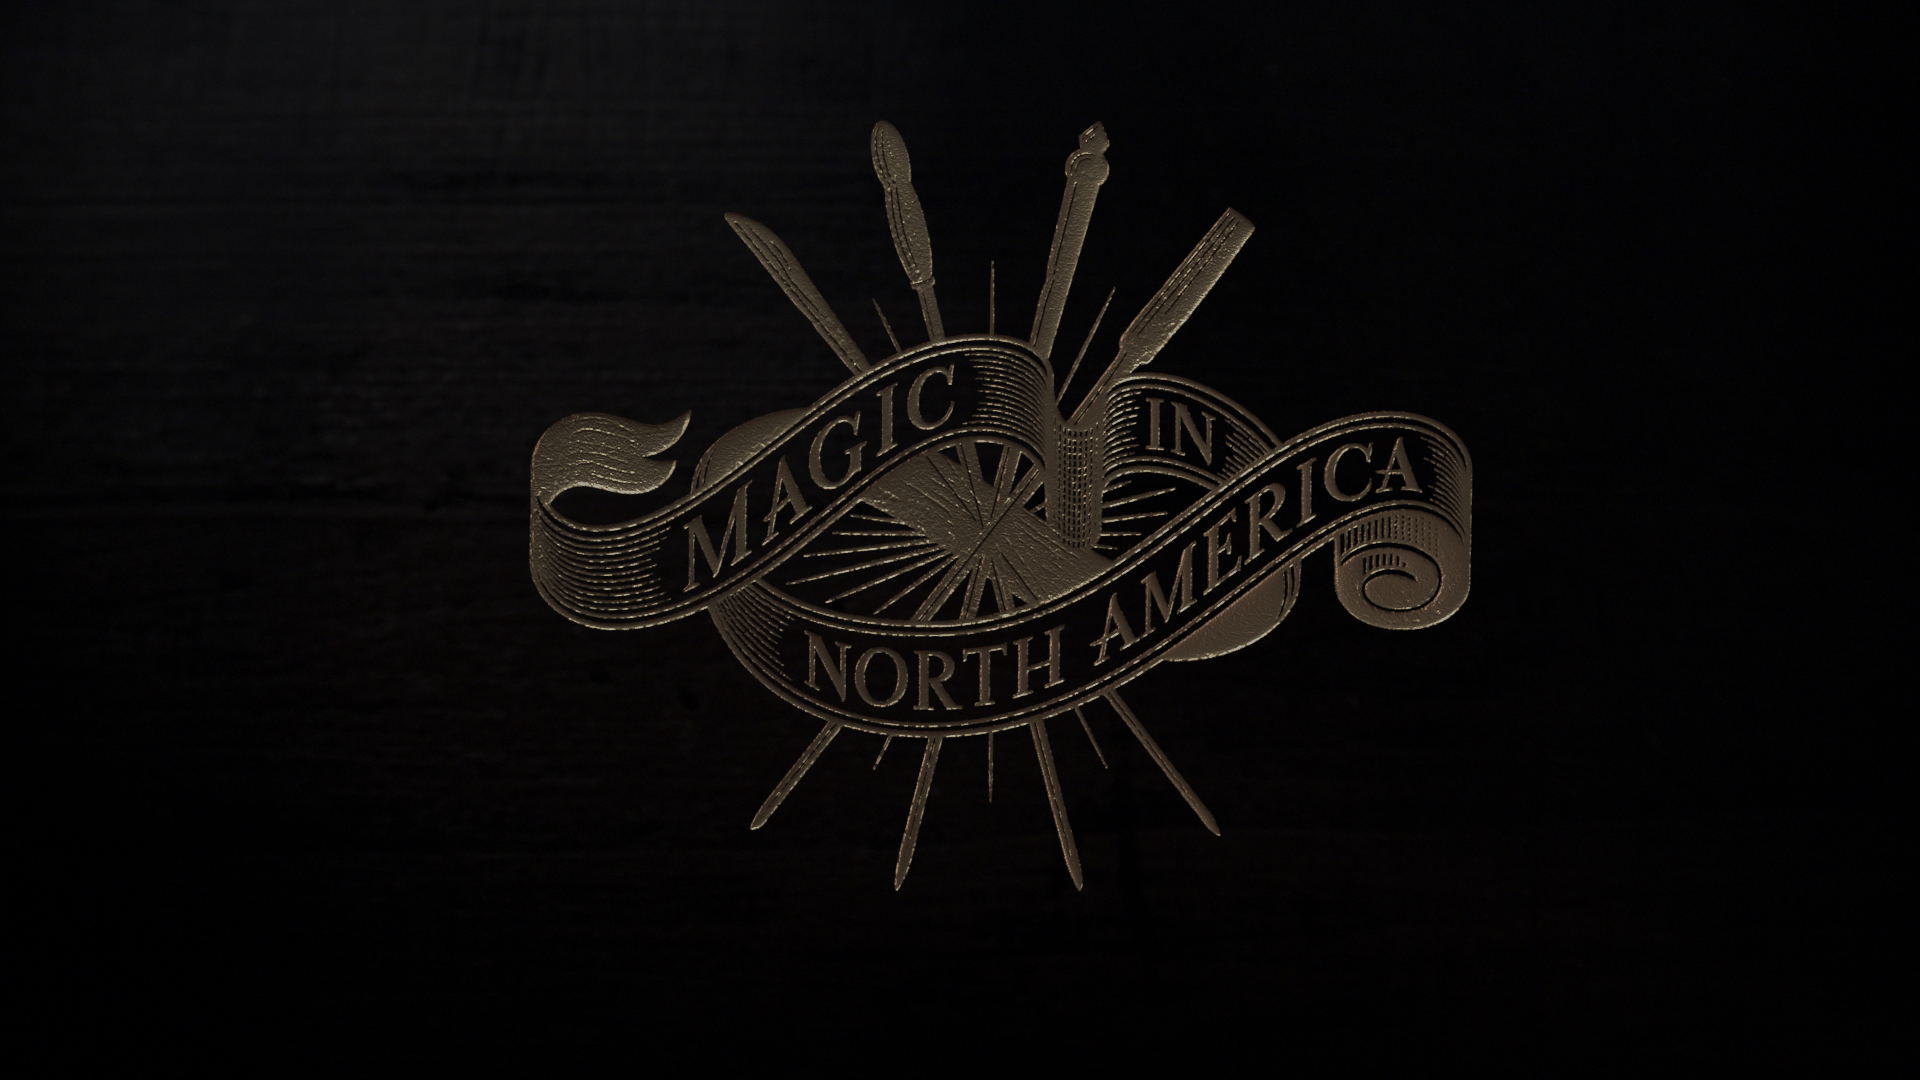 wb homina history of magic cover logo carousel